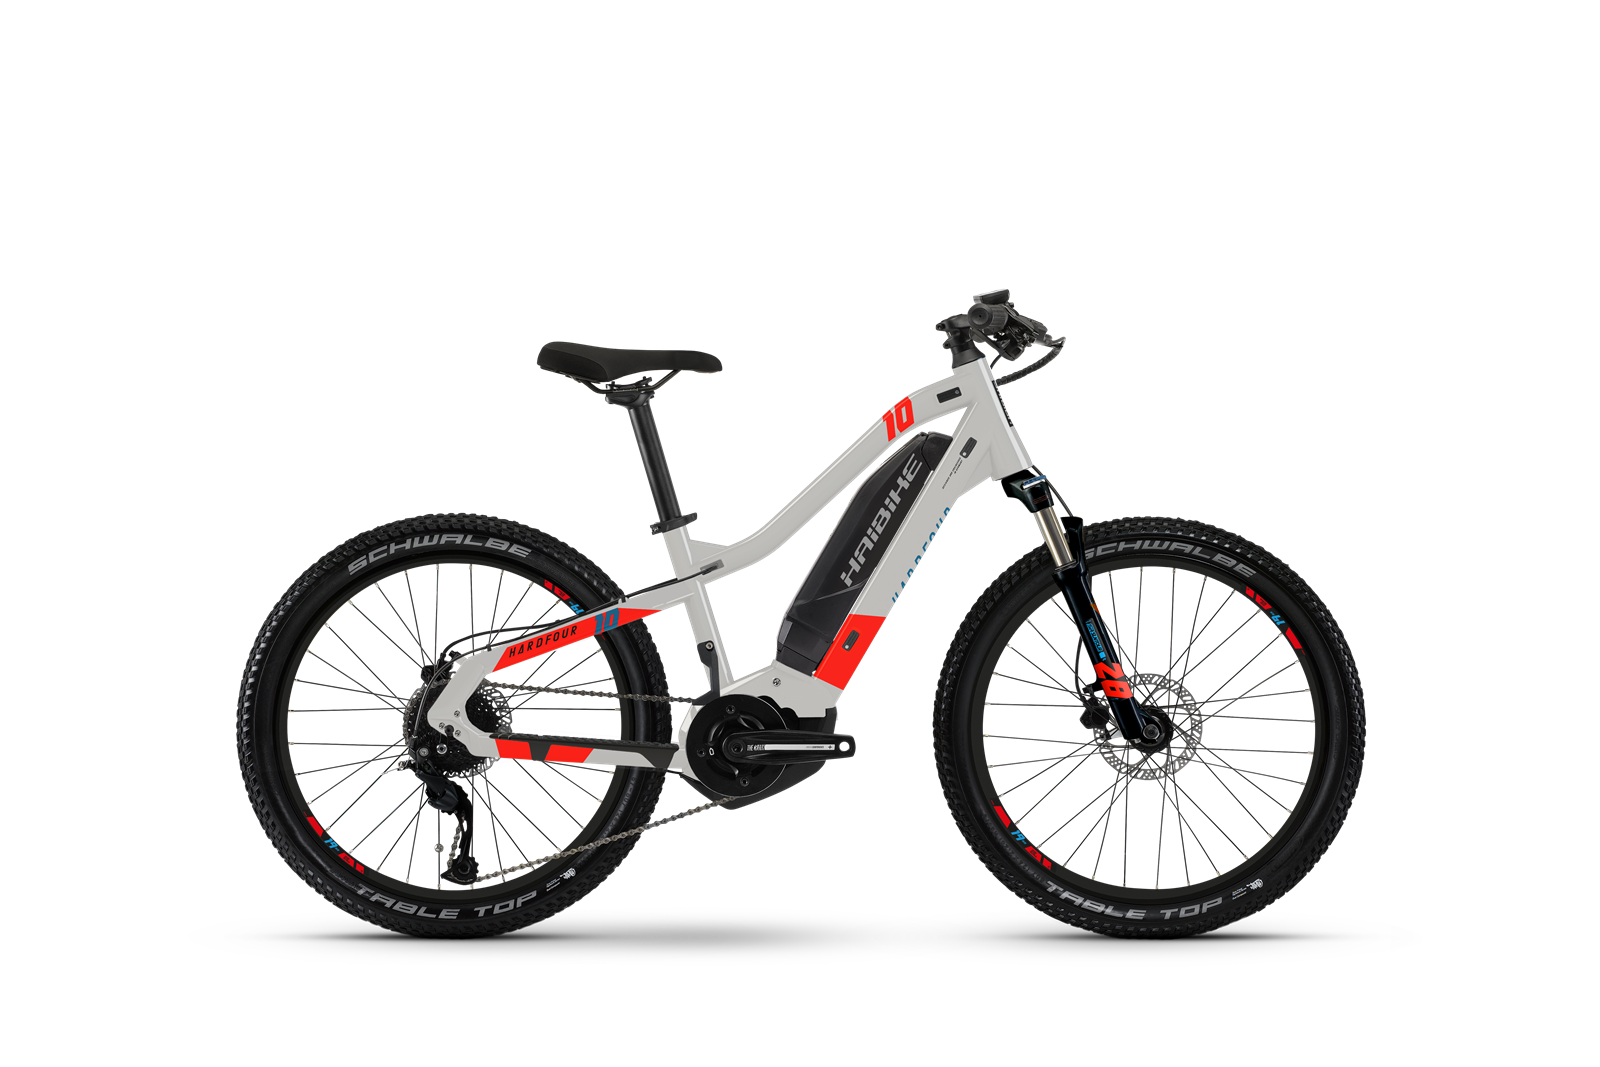 HAIBIKE HARDFOUR Kinder eMTB 400Wh grey/red 2021